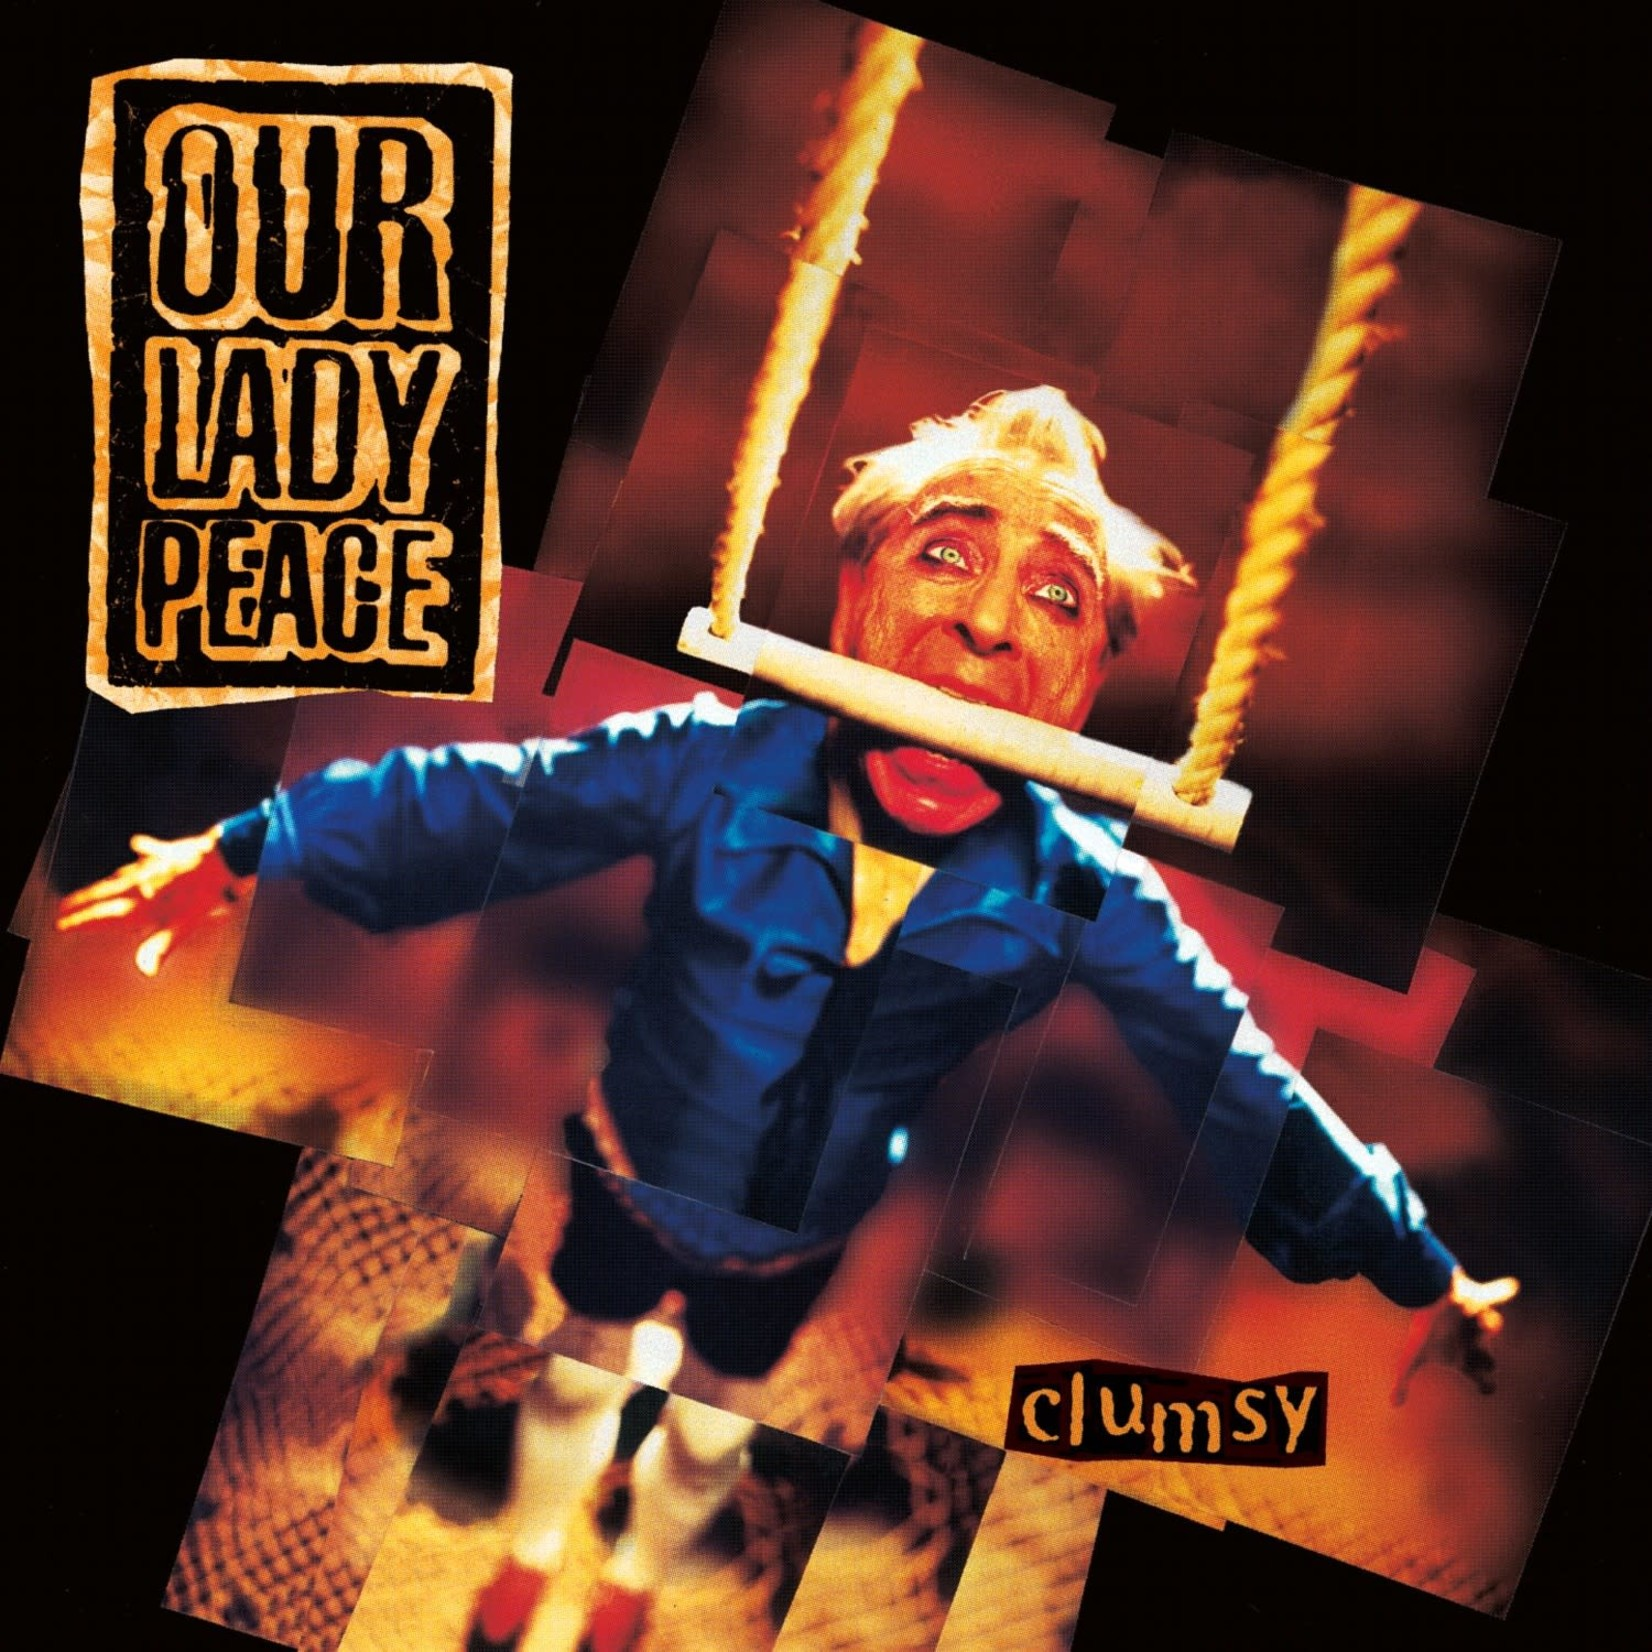 [New] Our Lady Peace: Clumsy